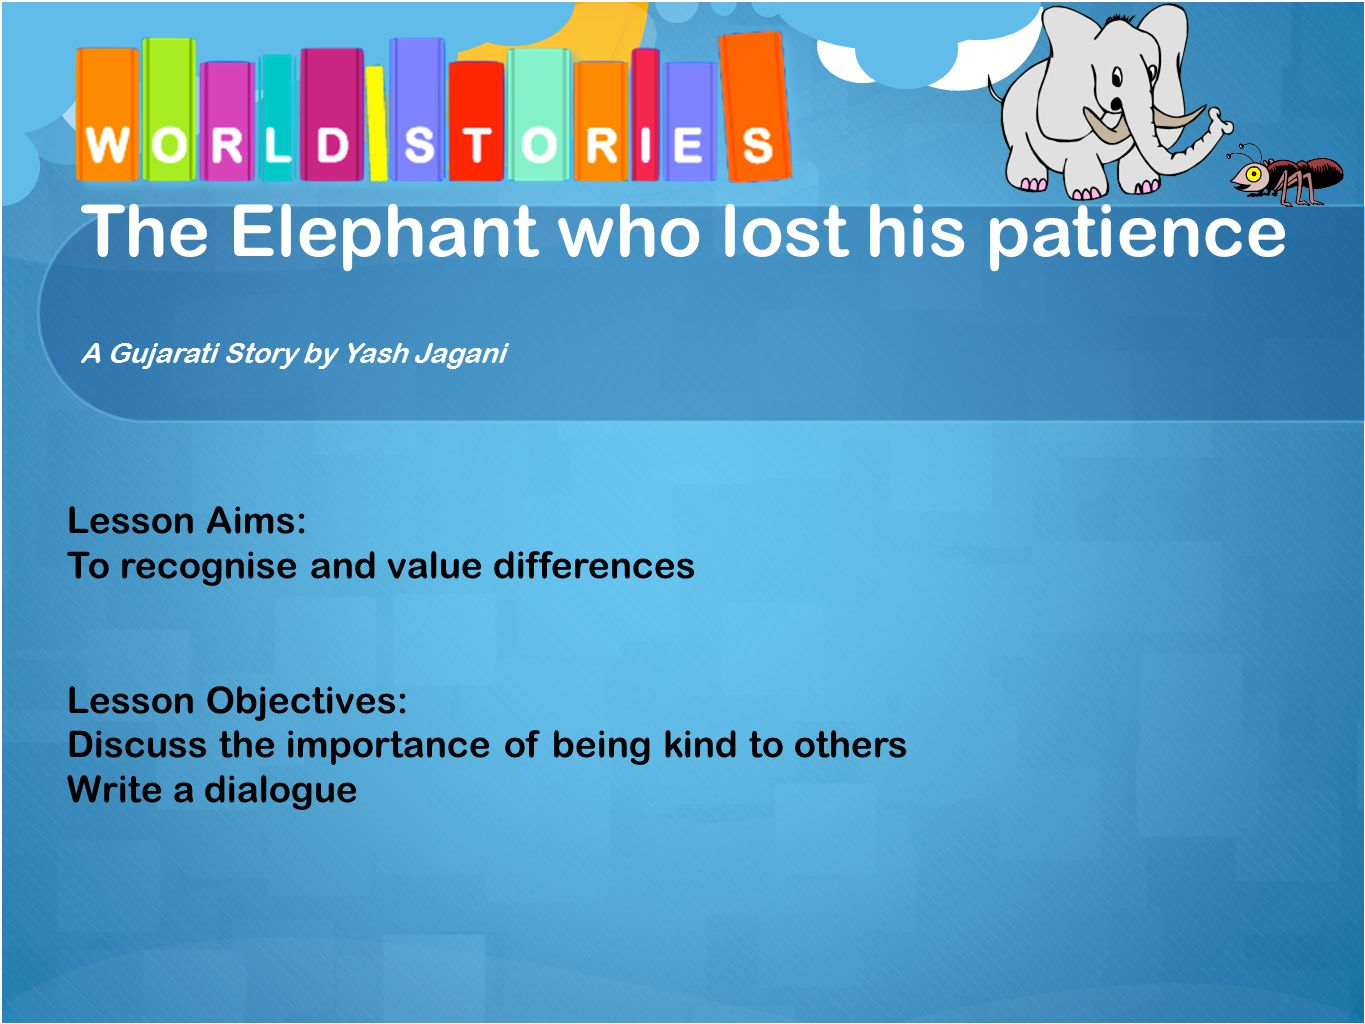 The Elephant who lost his patience A Gujarati Story by Yash Jagani Lesson Aims: To recognise and value differences Lesson Objectives: Discuss the importance of being kind to others Write a dialogue